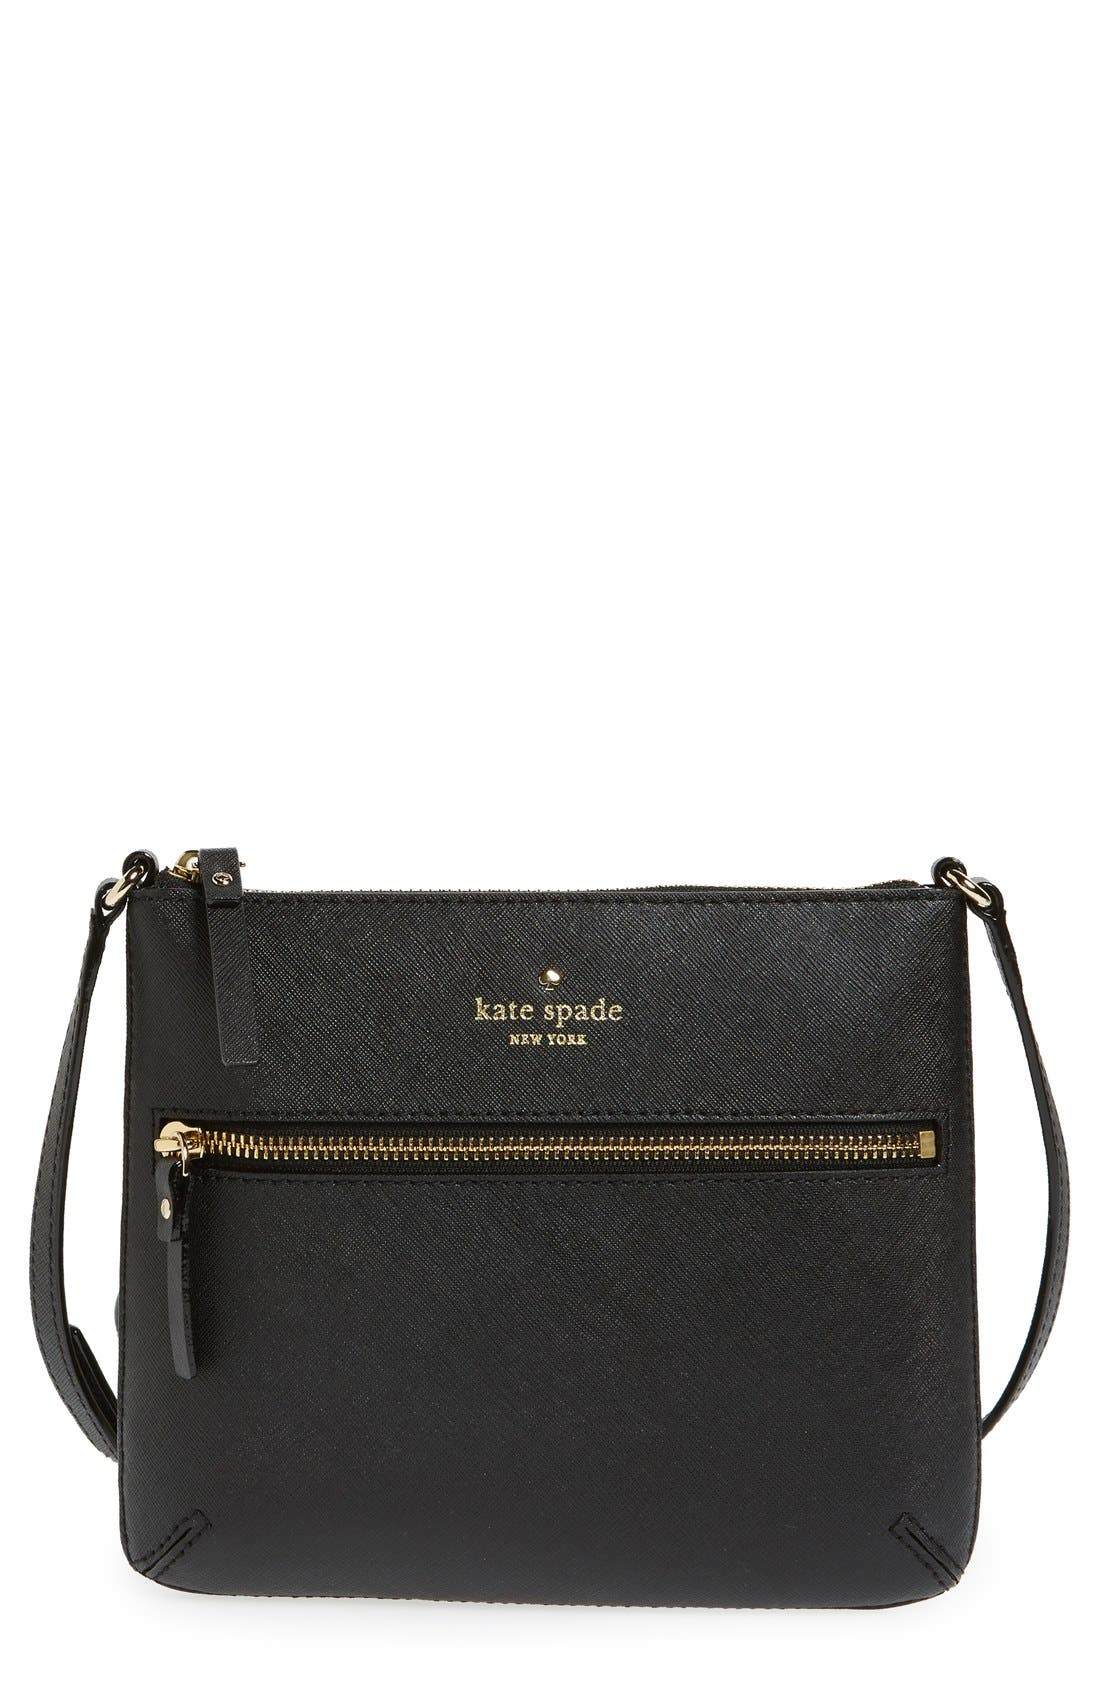 Alternate Image 1 Selected - kate spade new york 'tenley' saffiano leather crossbody bag